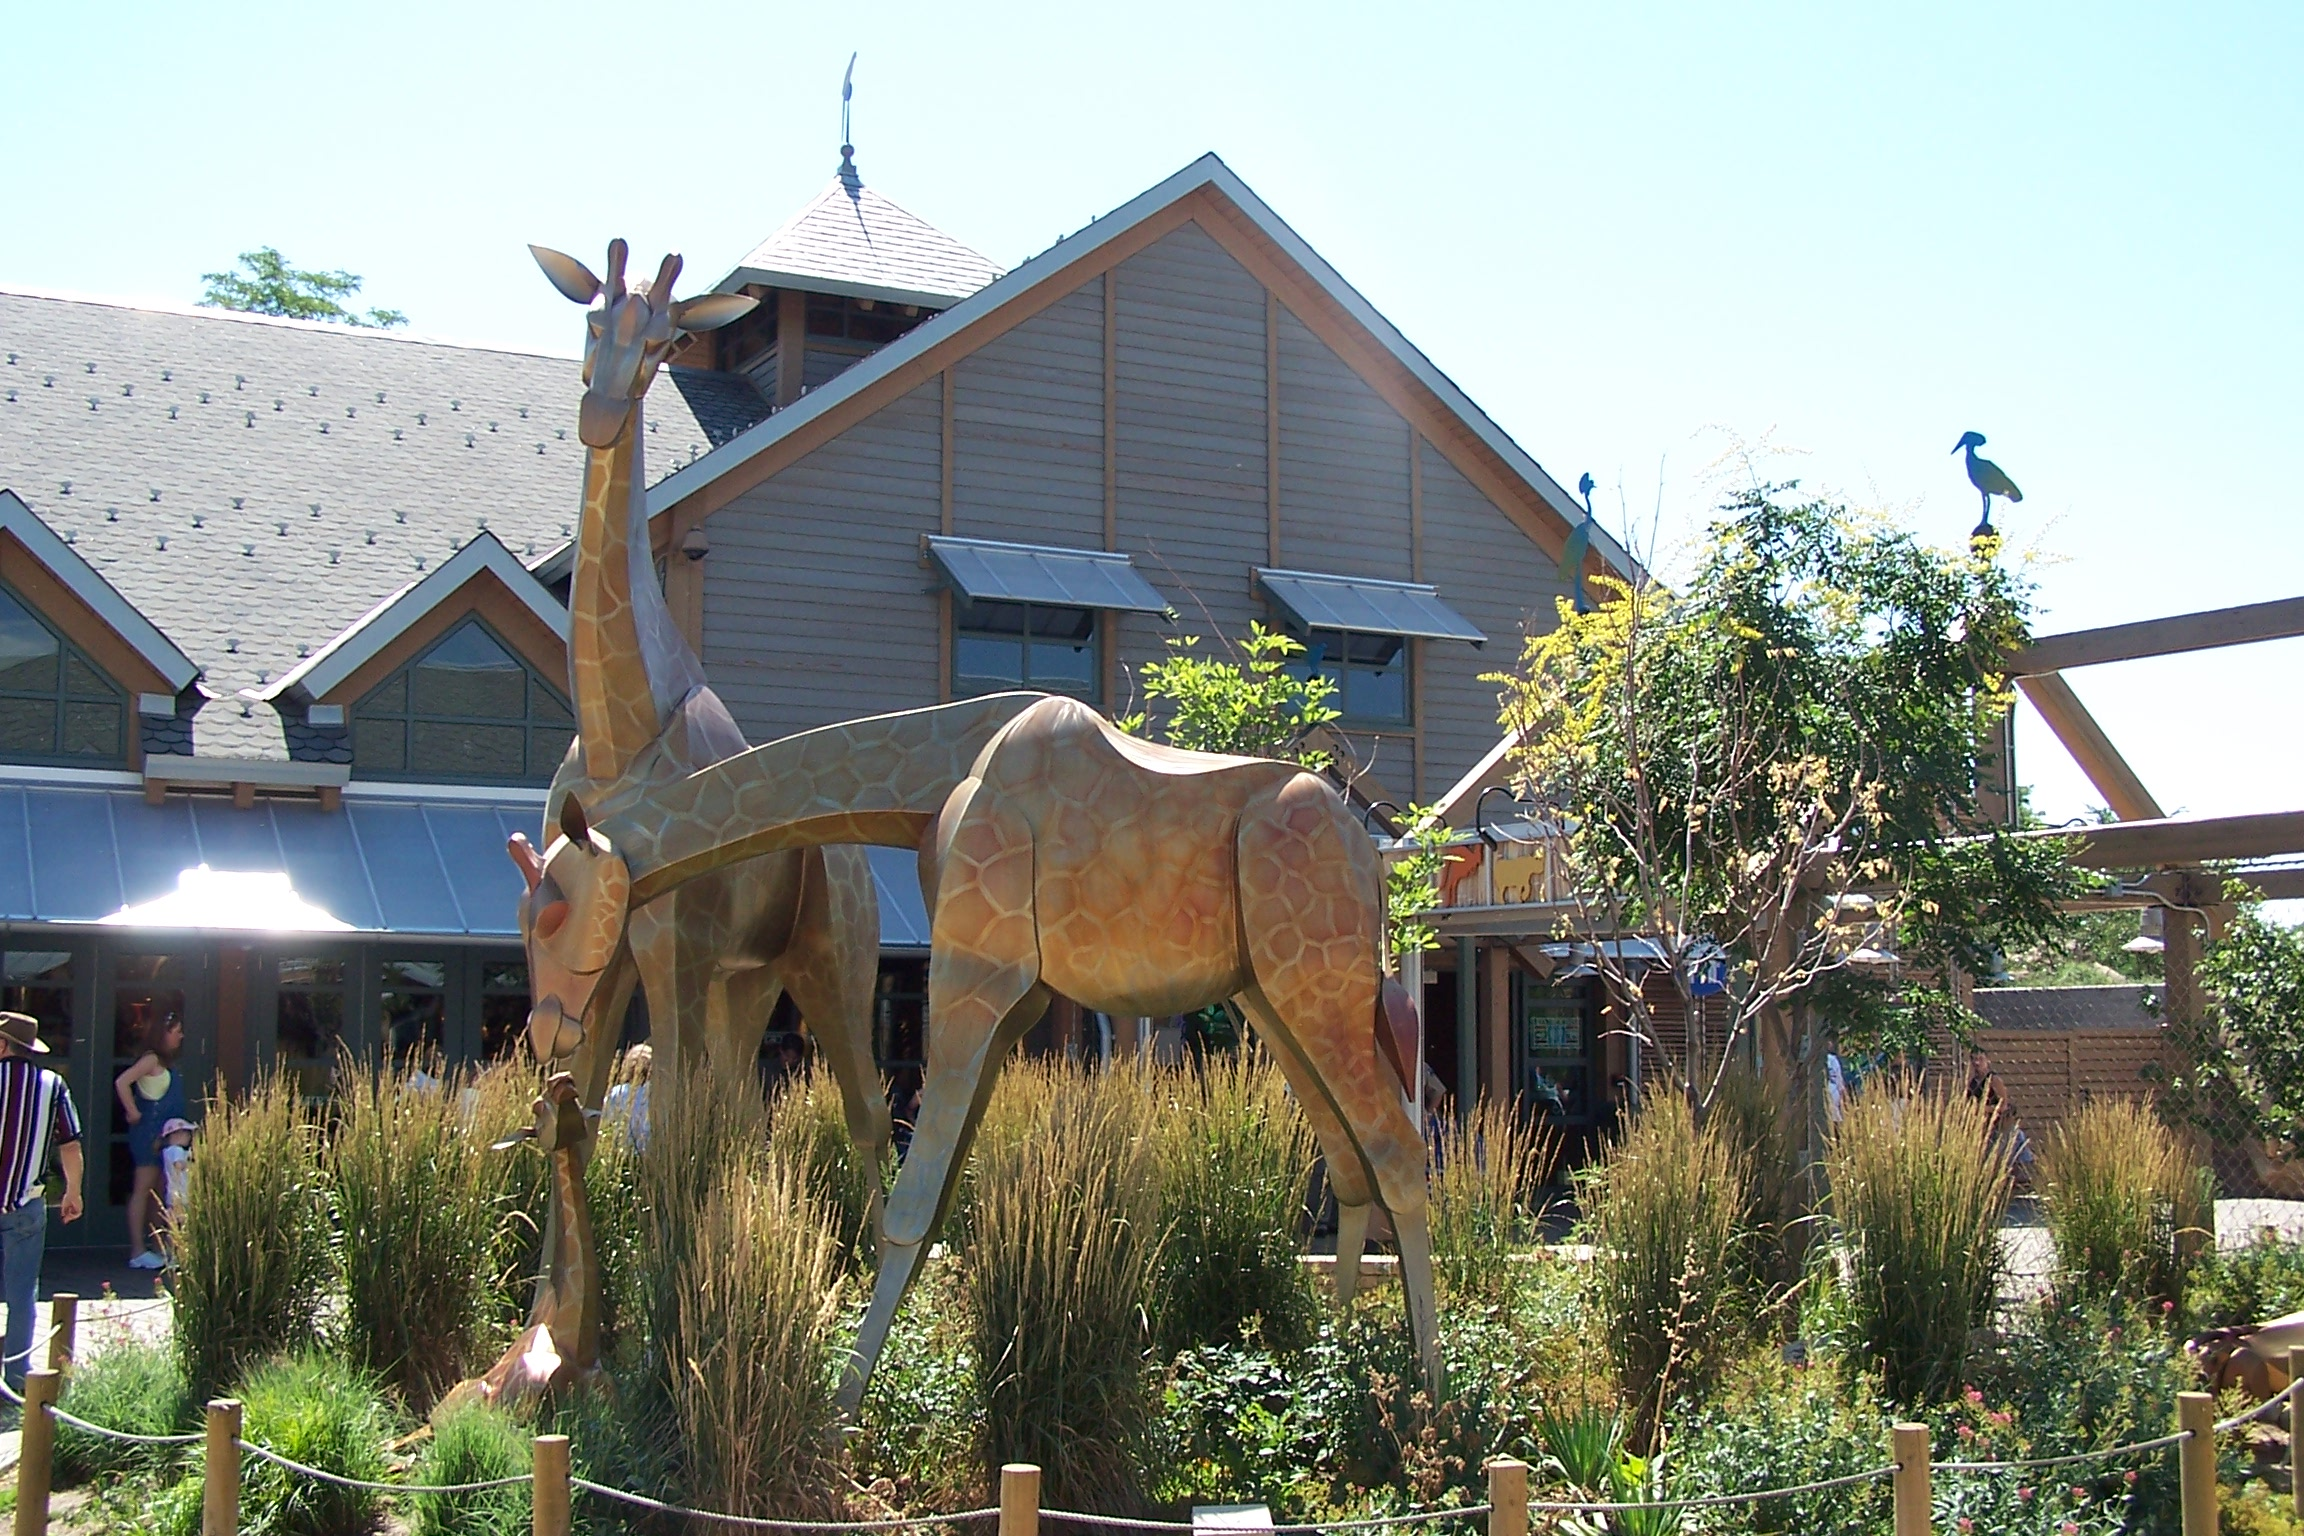 Entrance to the Denver Zoo (image from A Thousand Wonders)